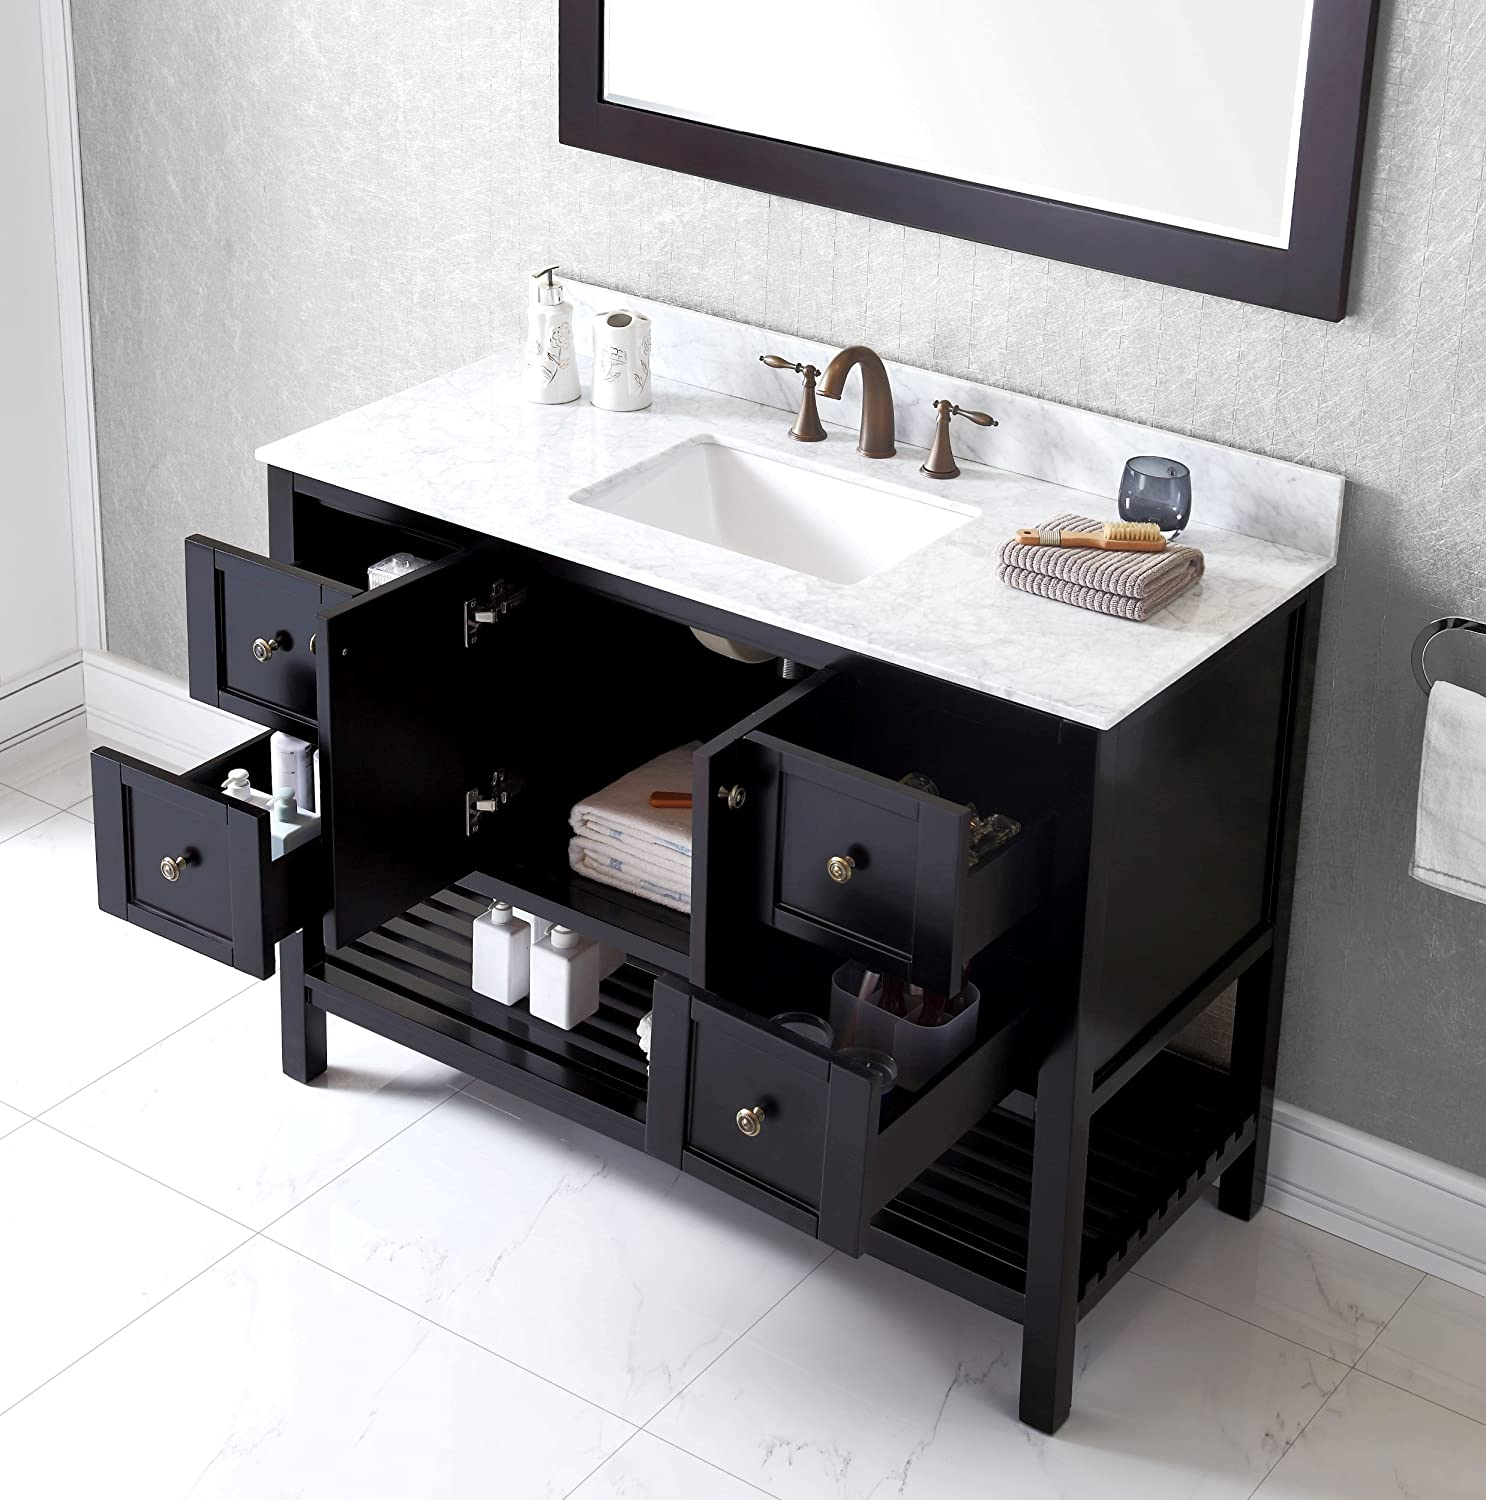 Virtu USA ESWMSQES Winterfell Inch Single Bathroom Vanity - Bathroom vanities pompano beach fl